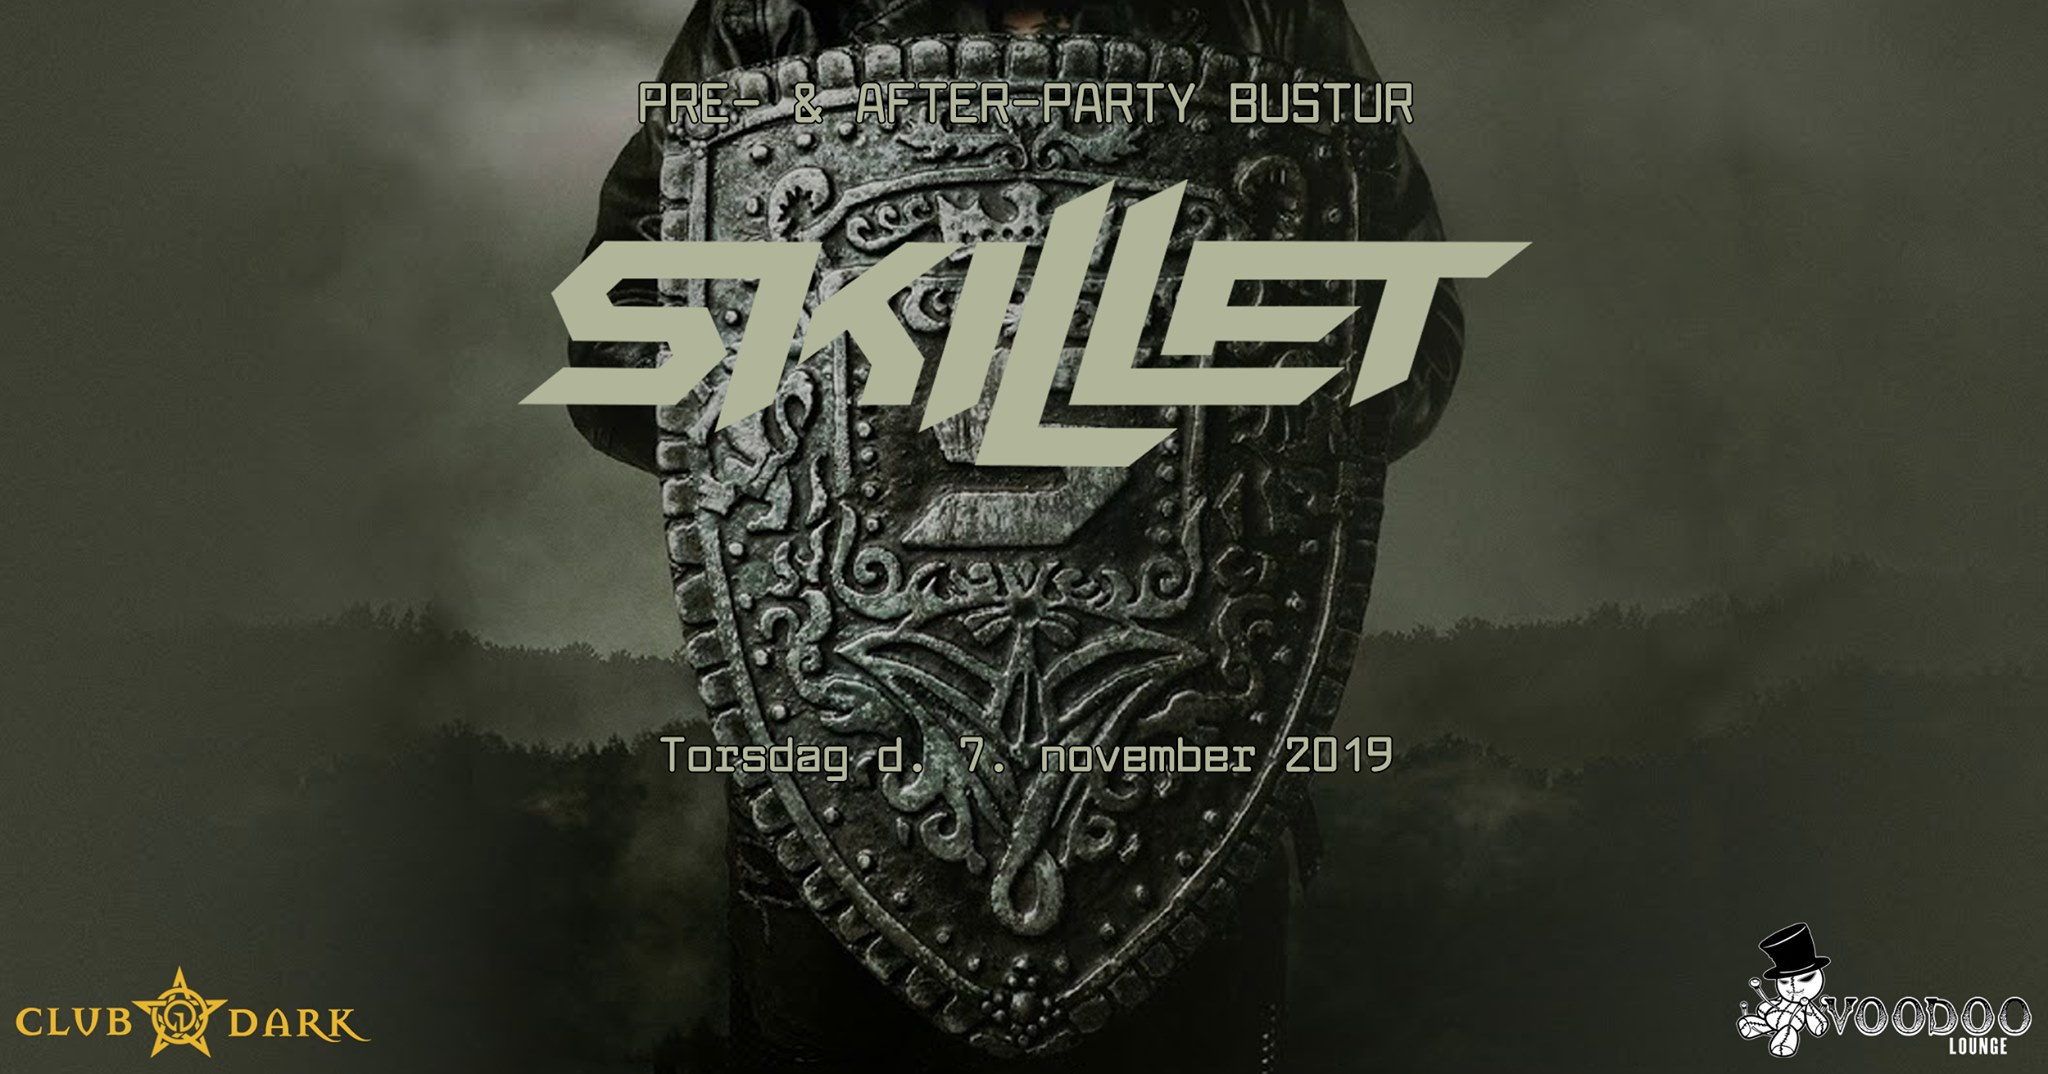 Skillet pre- & after-party bus trip